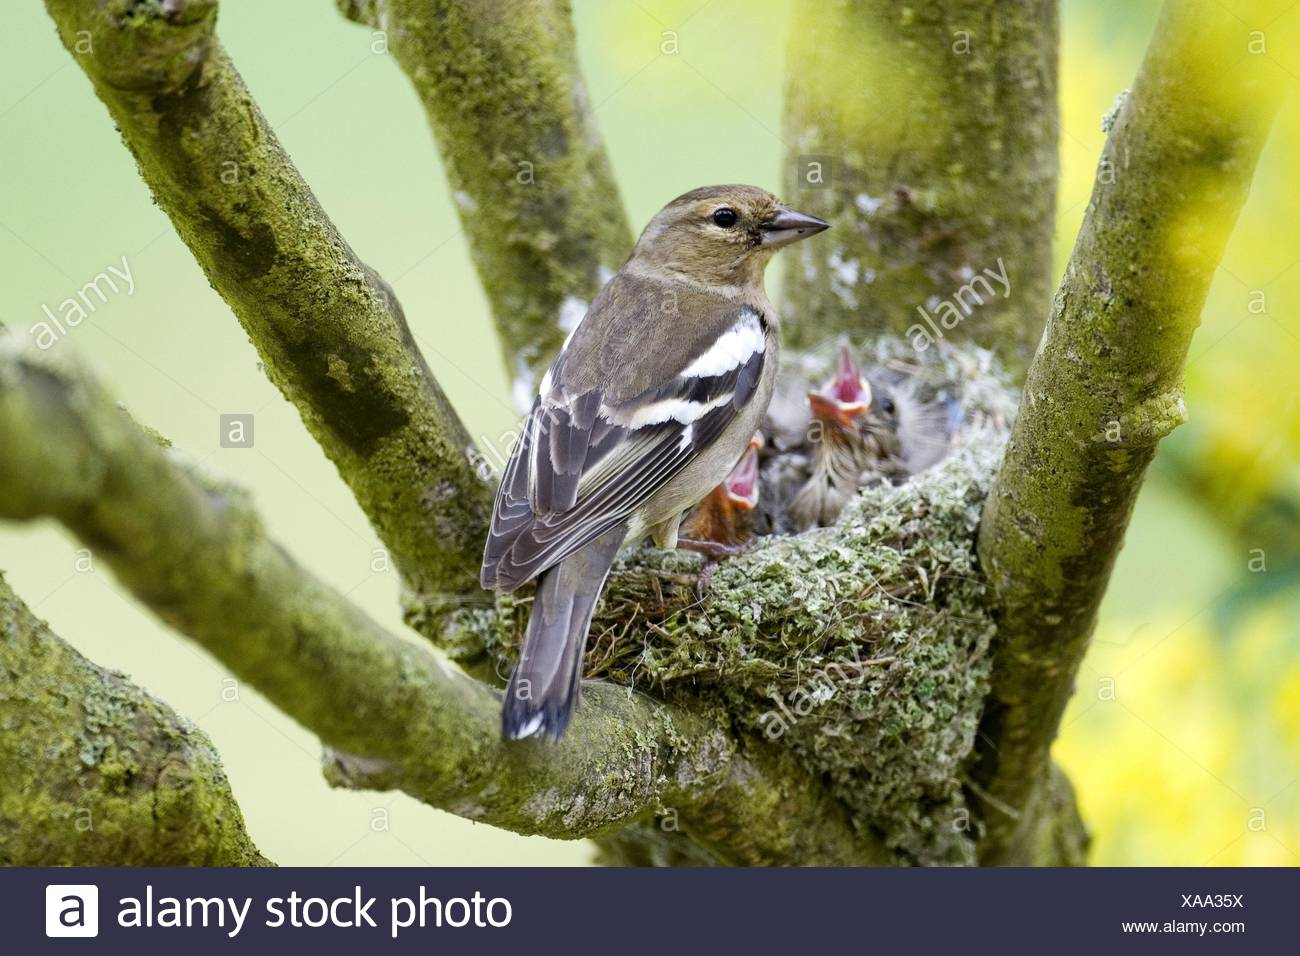 chaffinch nest - Stock Image